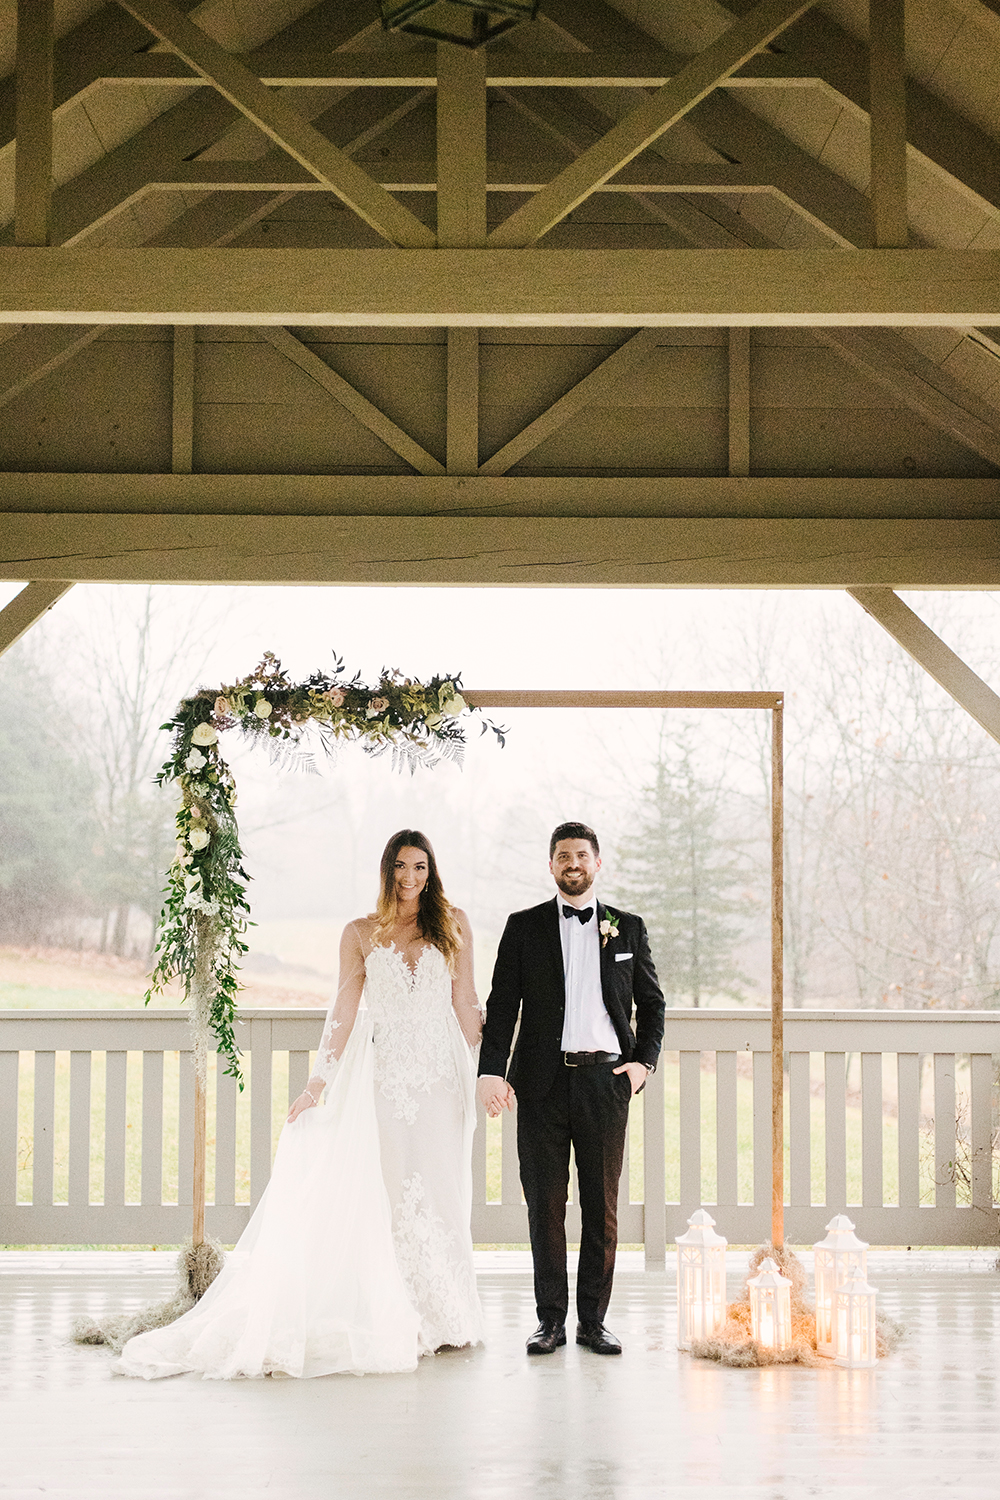 wedding ceremonies - photo by Alicia King Photography http://ruffledblog.com/upstate-new-york-wedding-ideas-with-copper